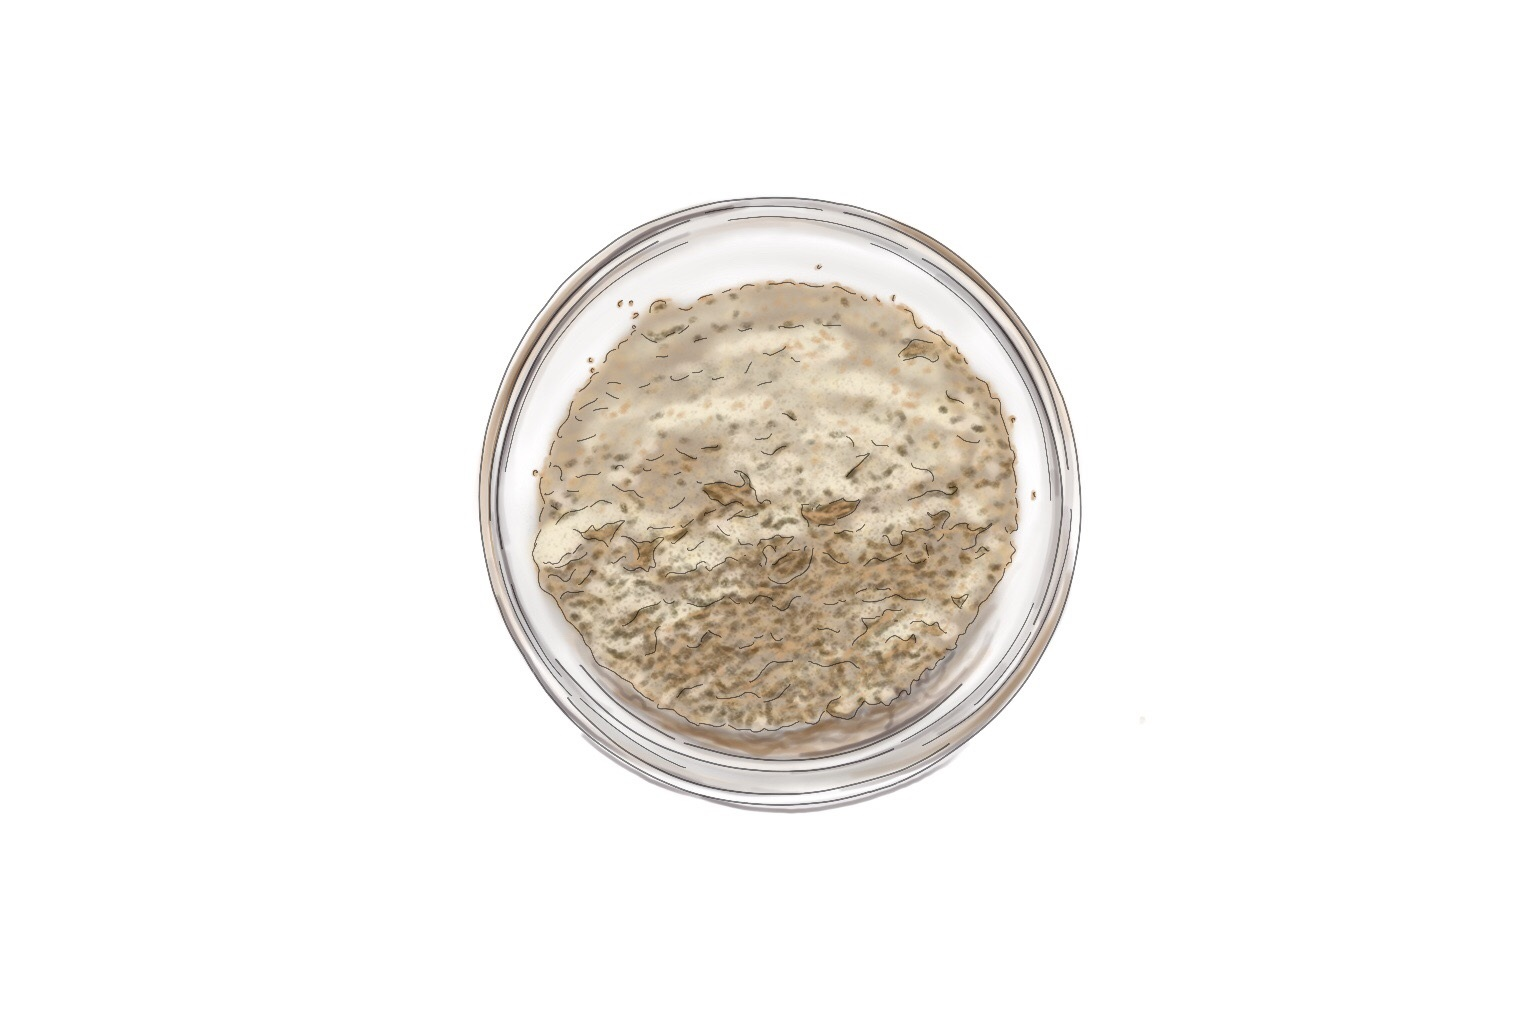 Bentonite Clay - A non-comedogenic clay derived from volcanic ash that has been used to heal skin for centuries. Bentonite Clay removes toxins from the body by drawing out impurities. It is especially beneficial for acne-prone skin by unclogging pores and detoxifying the skin to calm inflammation. Bentonite Clay also gives your skin a gentle exfoliation, helping to even out your skin tone, making it feel soft and smooth, and helps with the overall glow factor. Bentonite Clay is one of the main ingredients in the Clay Mask.